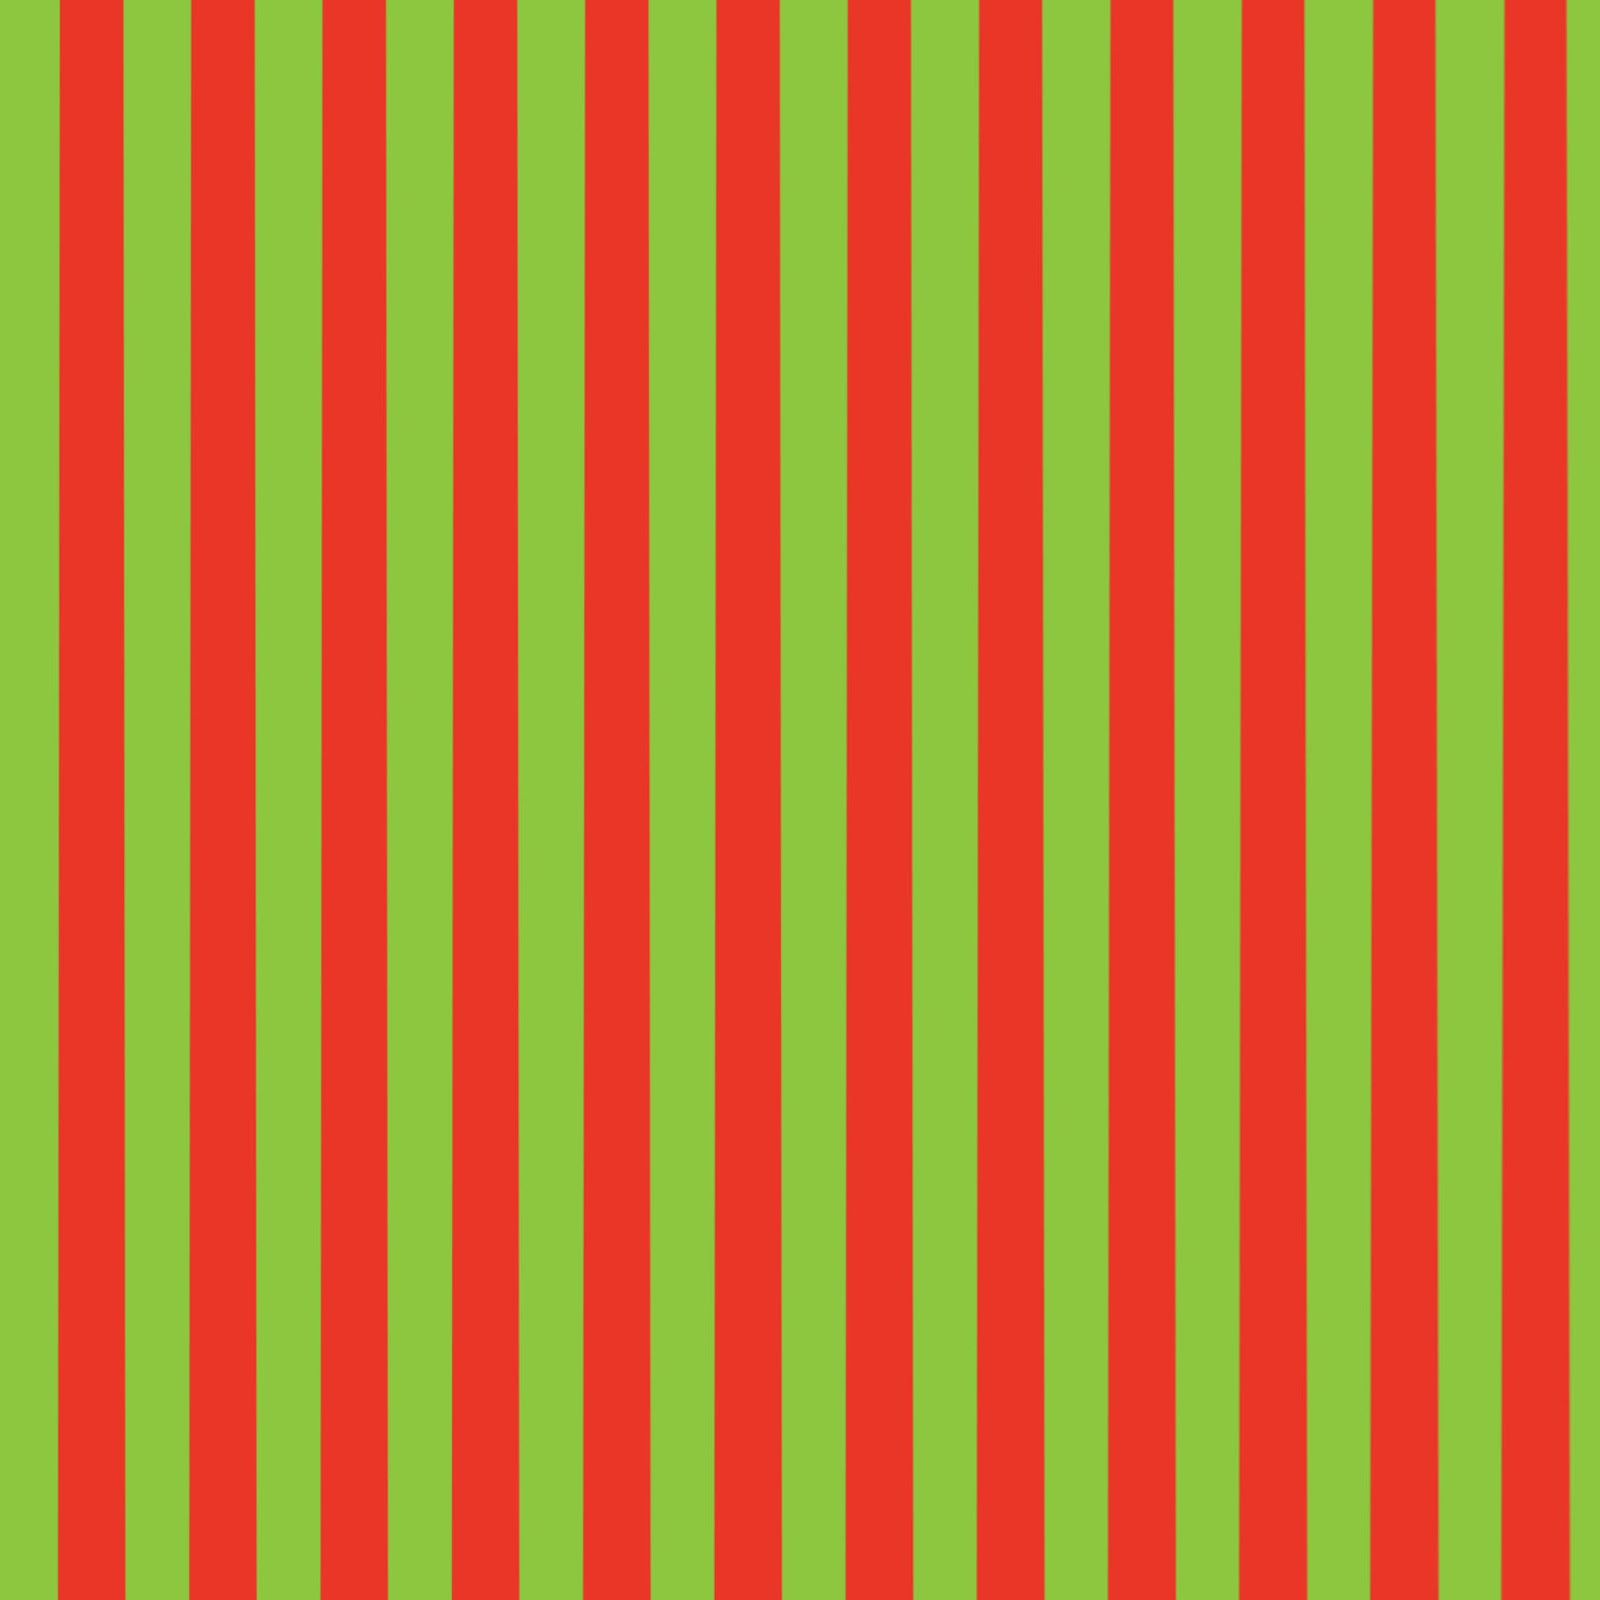 Red And Green Stripes Wiring Diagrams Arduinorelayjpg Stampin D Amour Free Digi Scrapbook Paper Striped Sweater